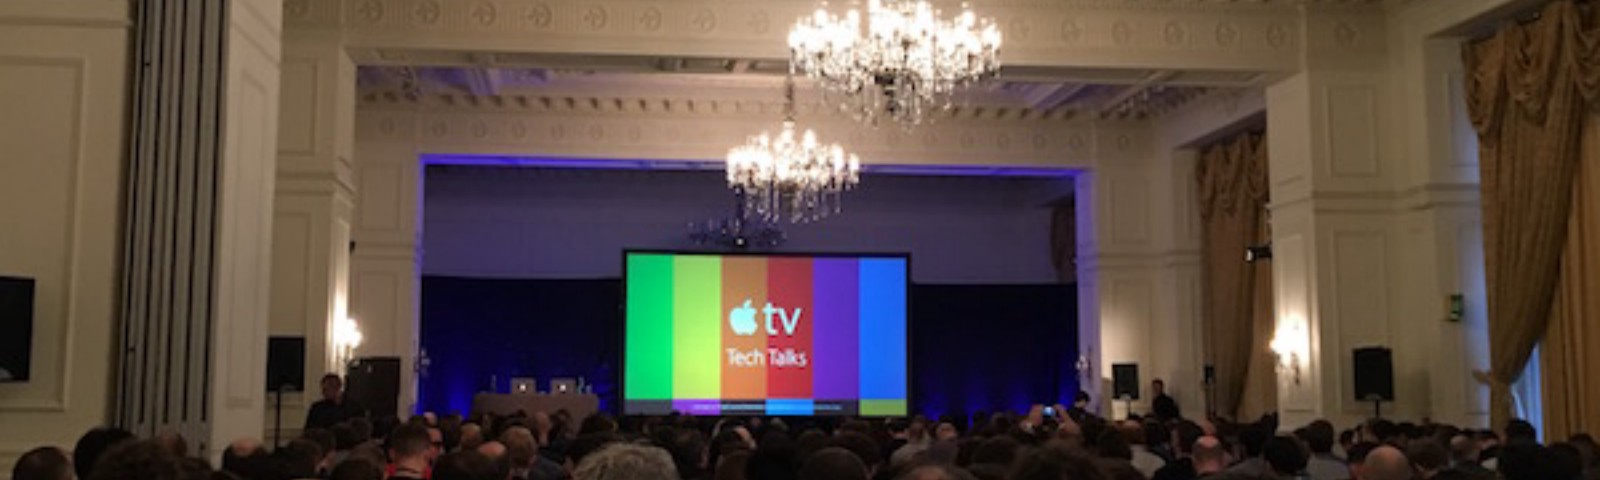 Apple tvOS Tech Talks, London 2016 - Songkick Tech